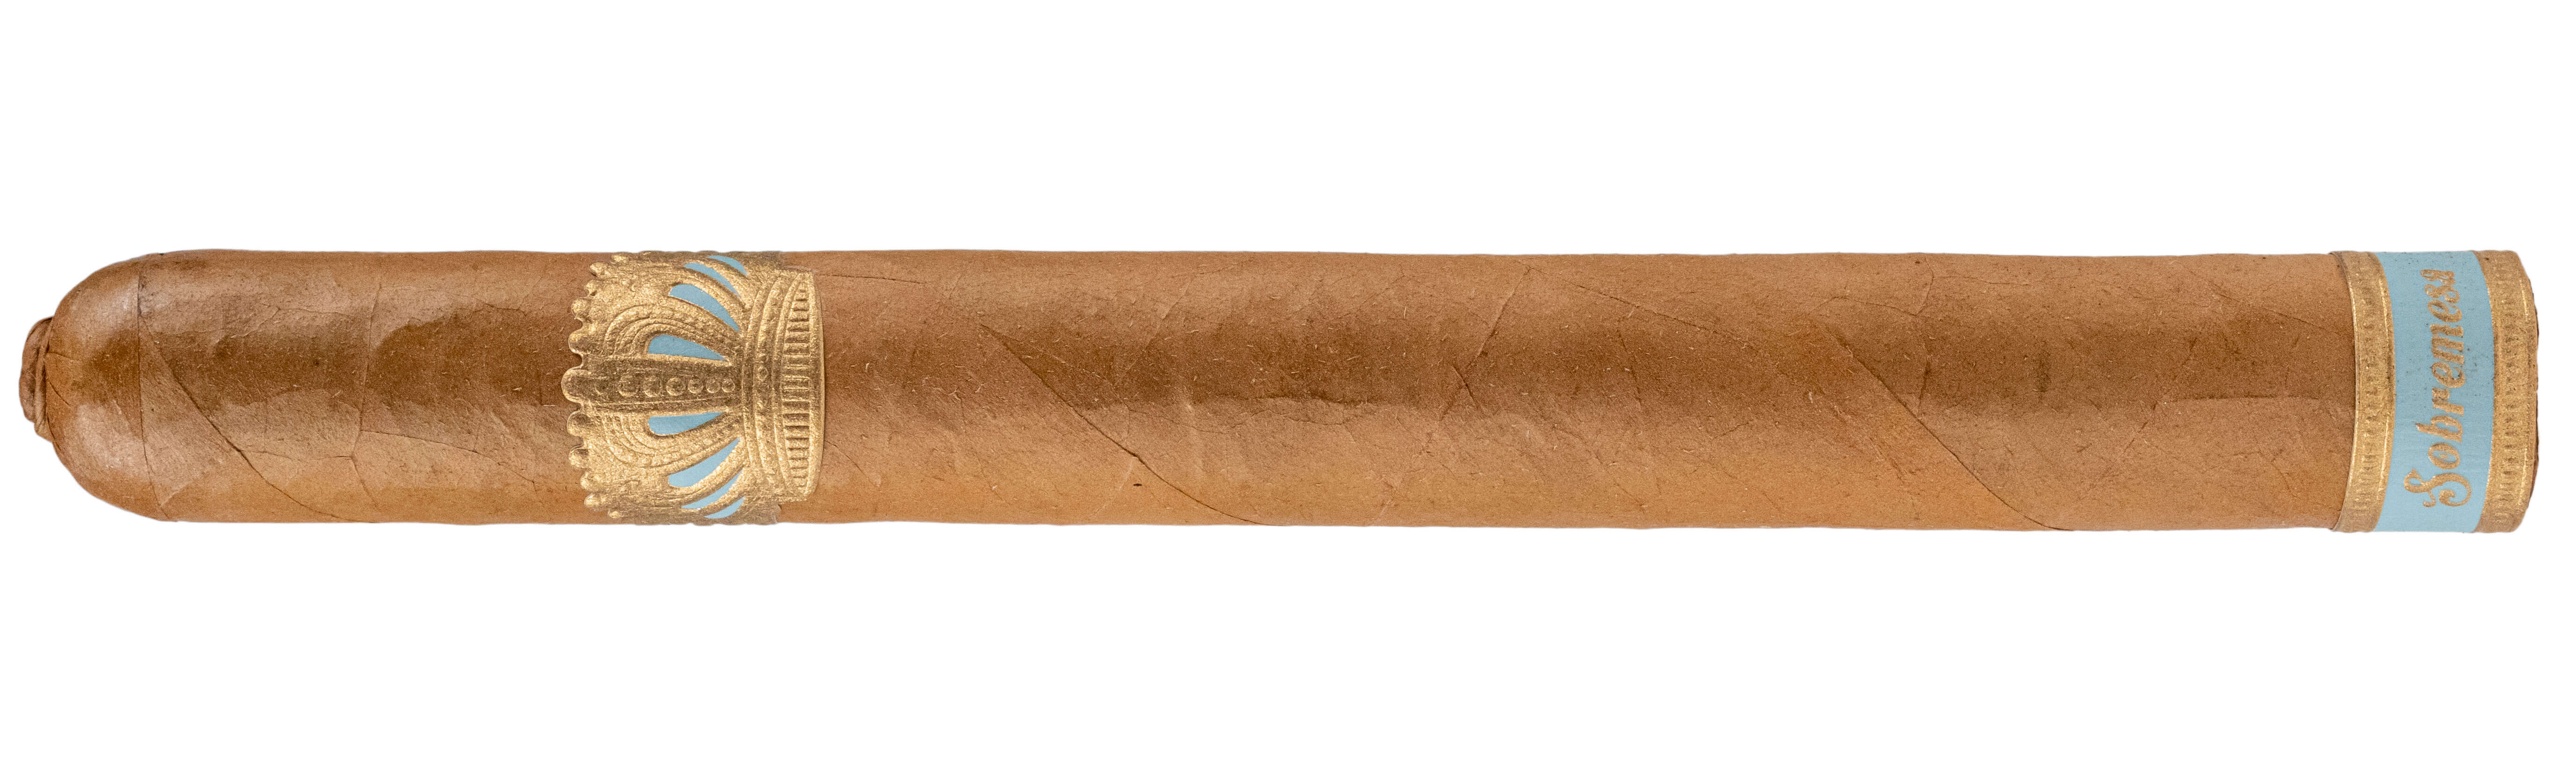 Blind Cigar Review: Dunbarton Tobacco & Trust | Sobremesa Brûlée Blue